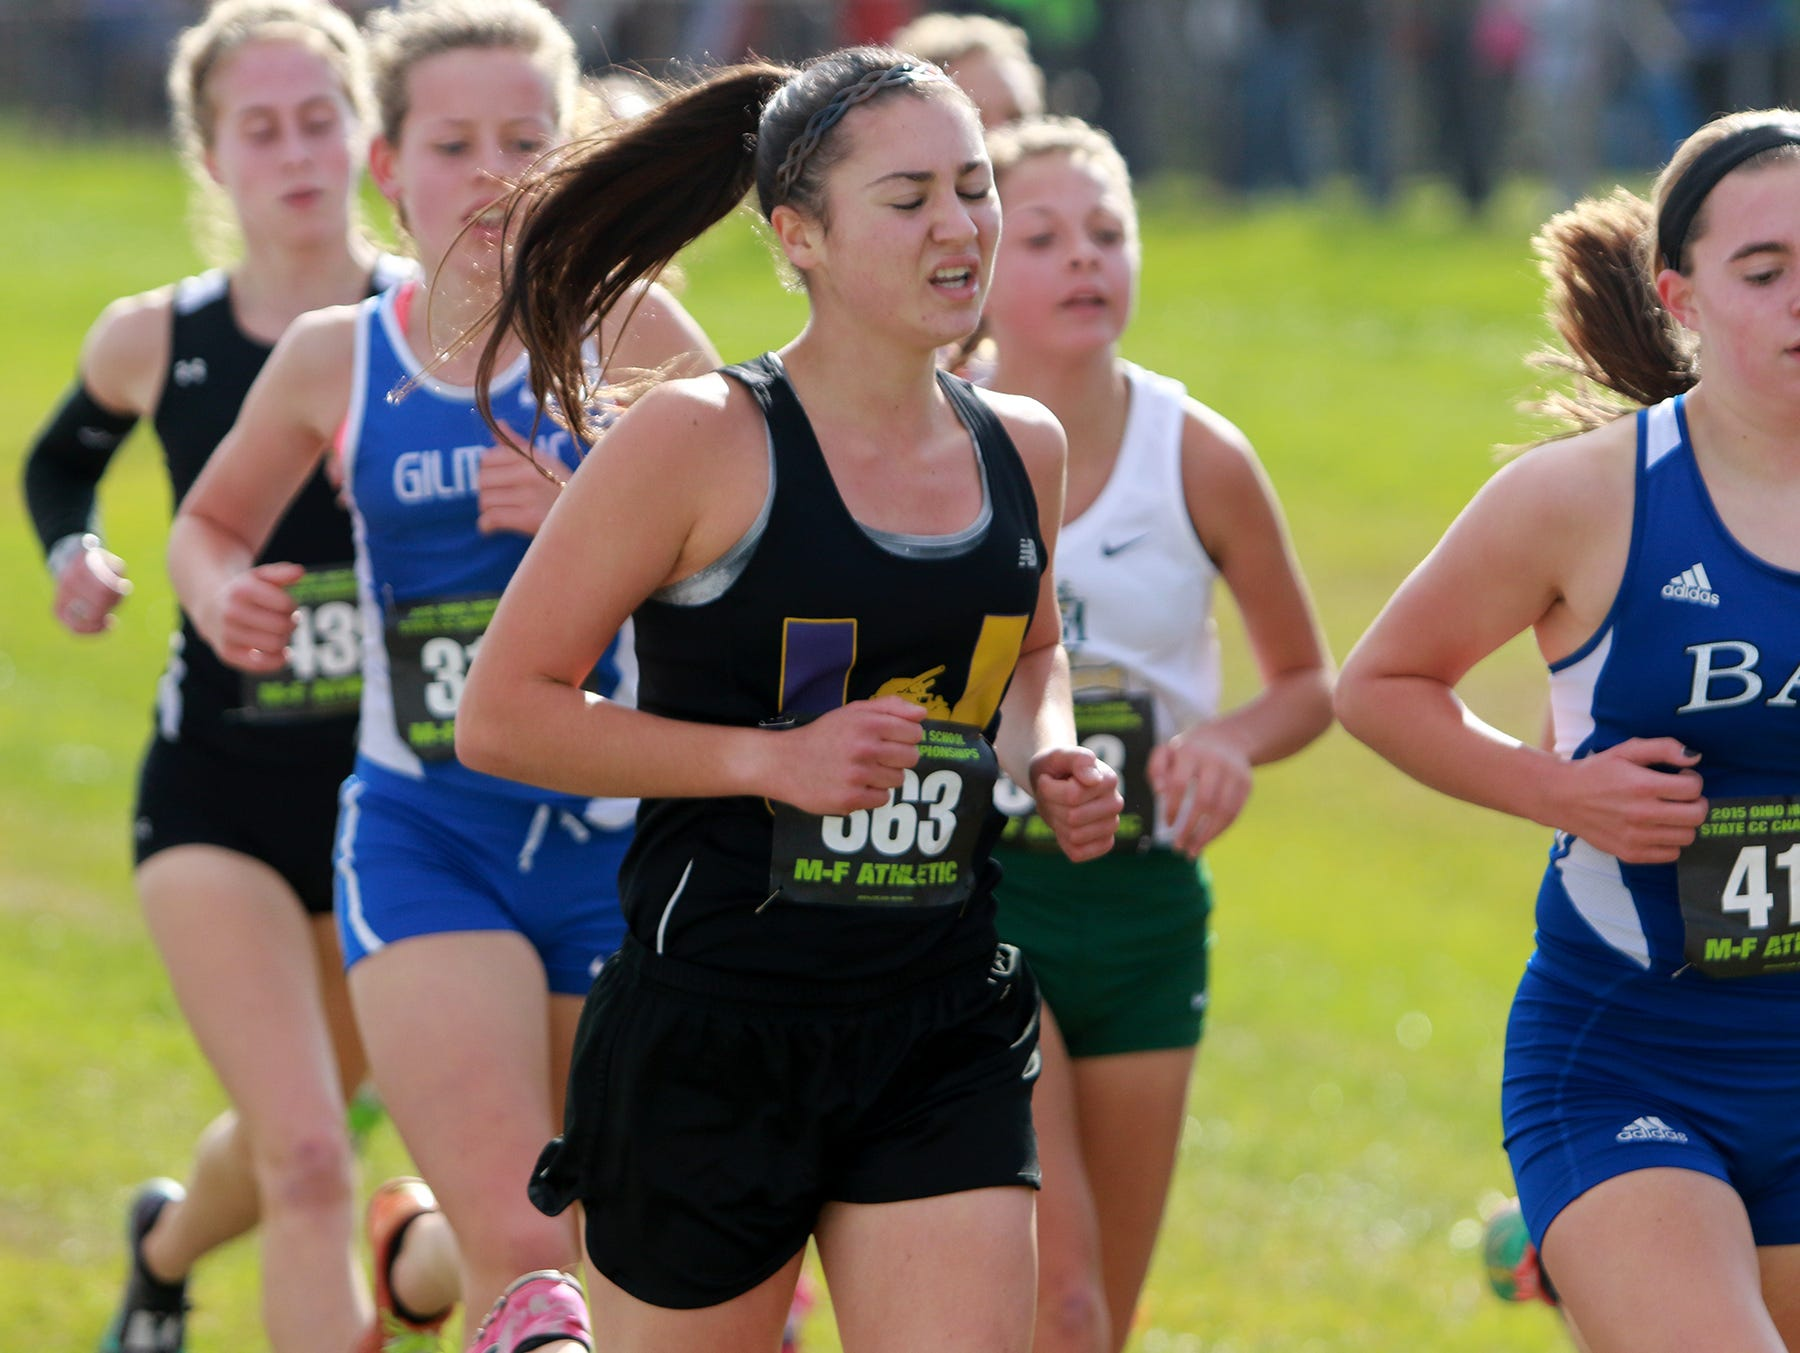 Haley Wright of Unioto High School runs in the Division II state cross country meet.